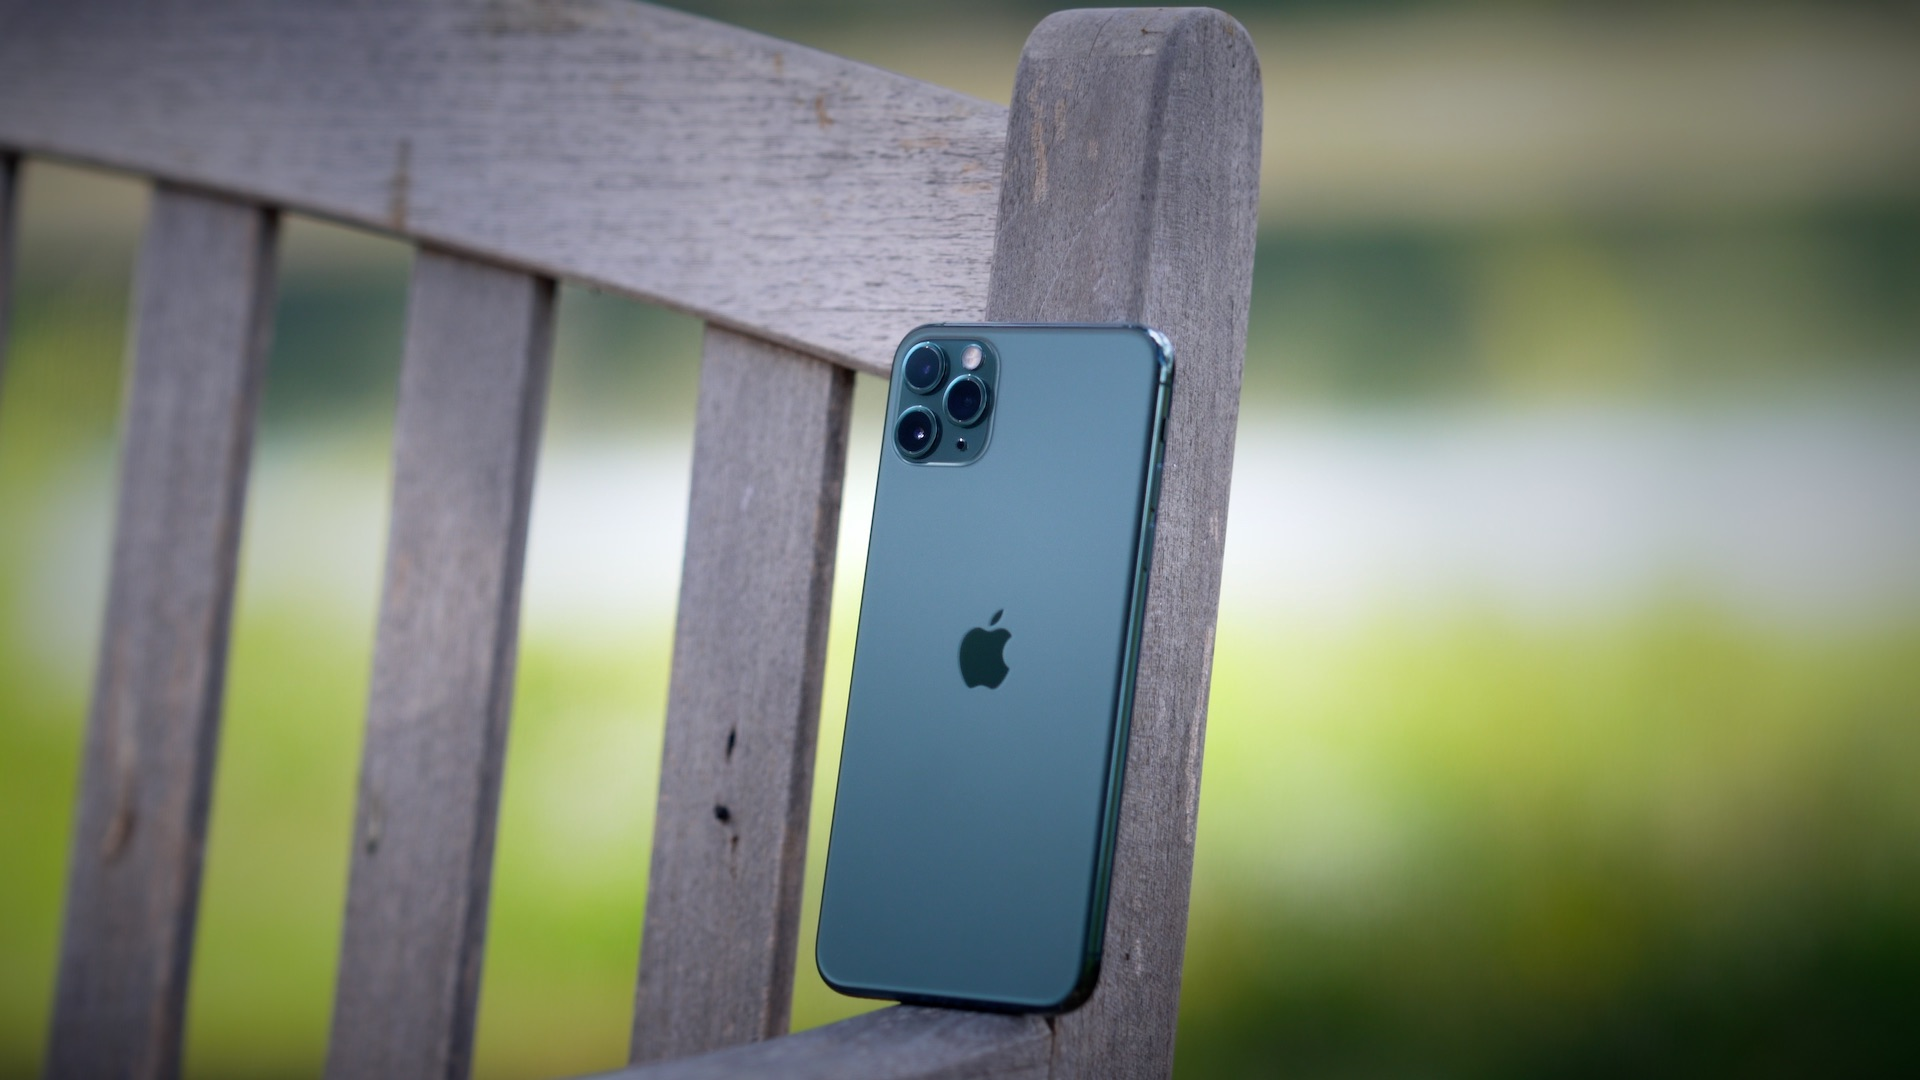 Top Iphone 11 Pro Features Built For Photo And Video Enthusiasts